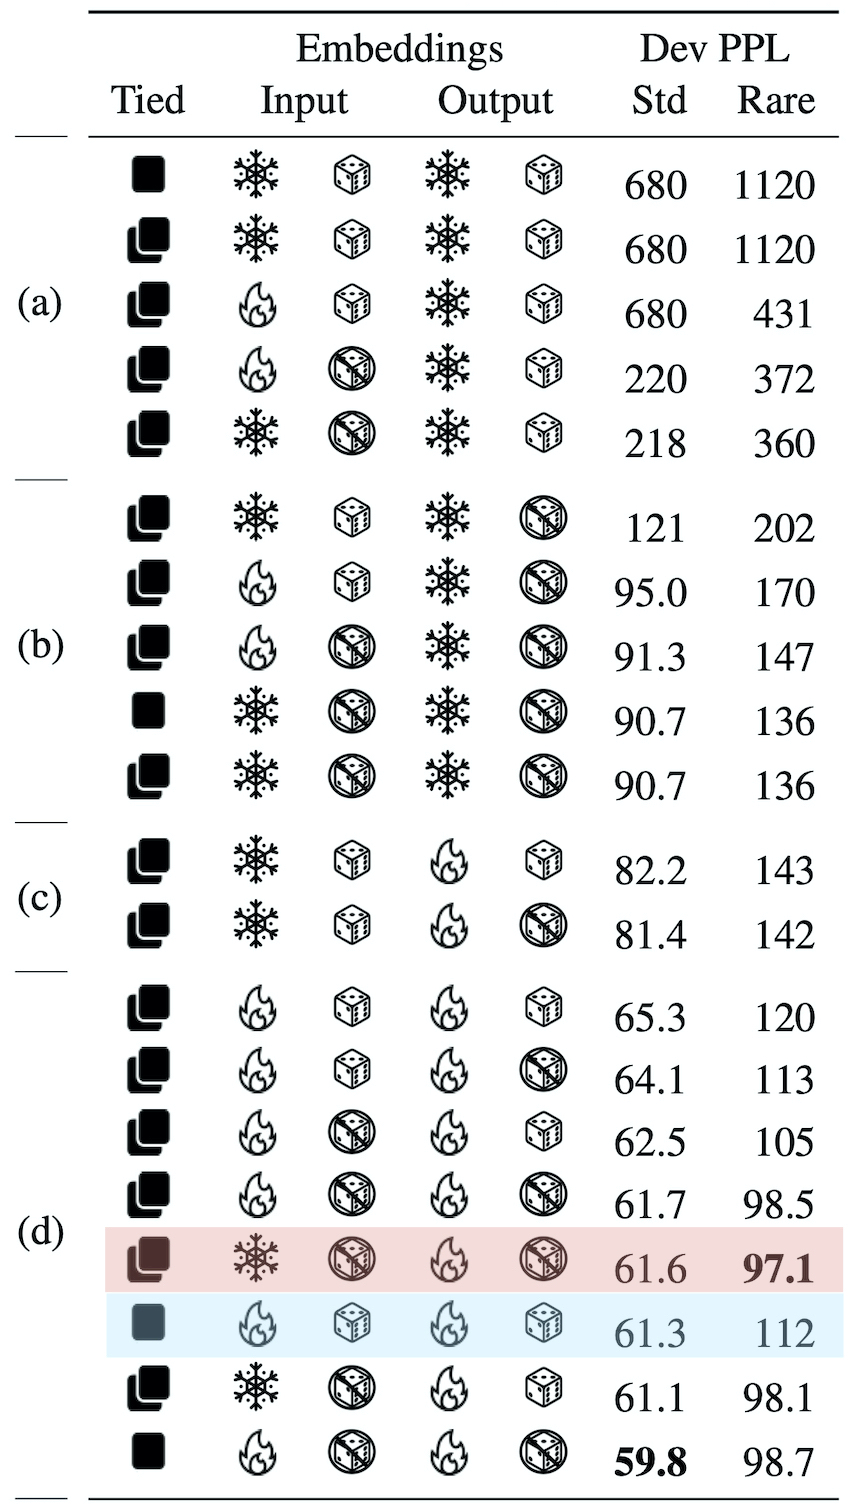 Variations on LM (for written form of table see bottom of page)